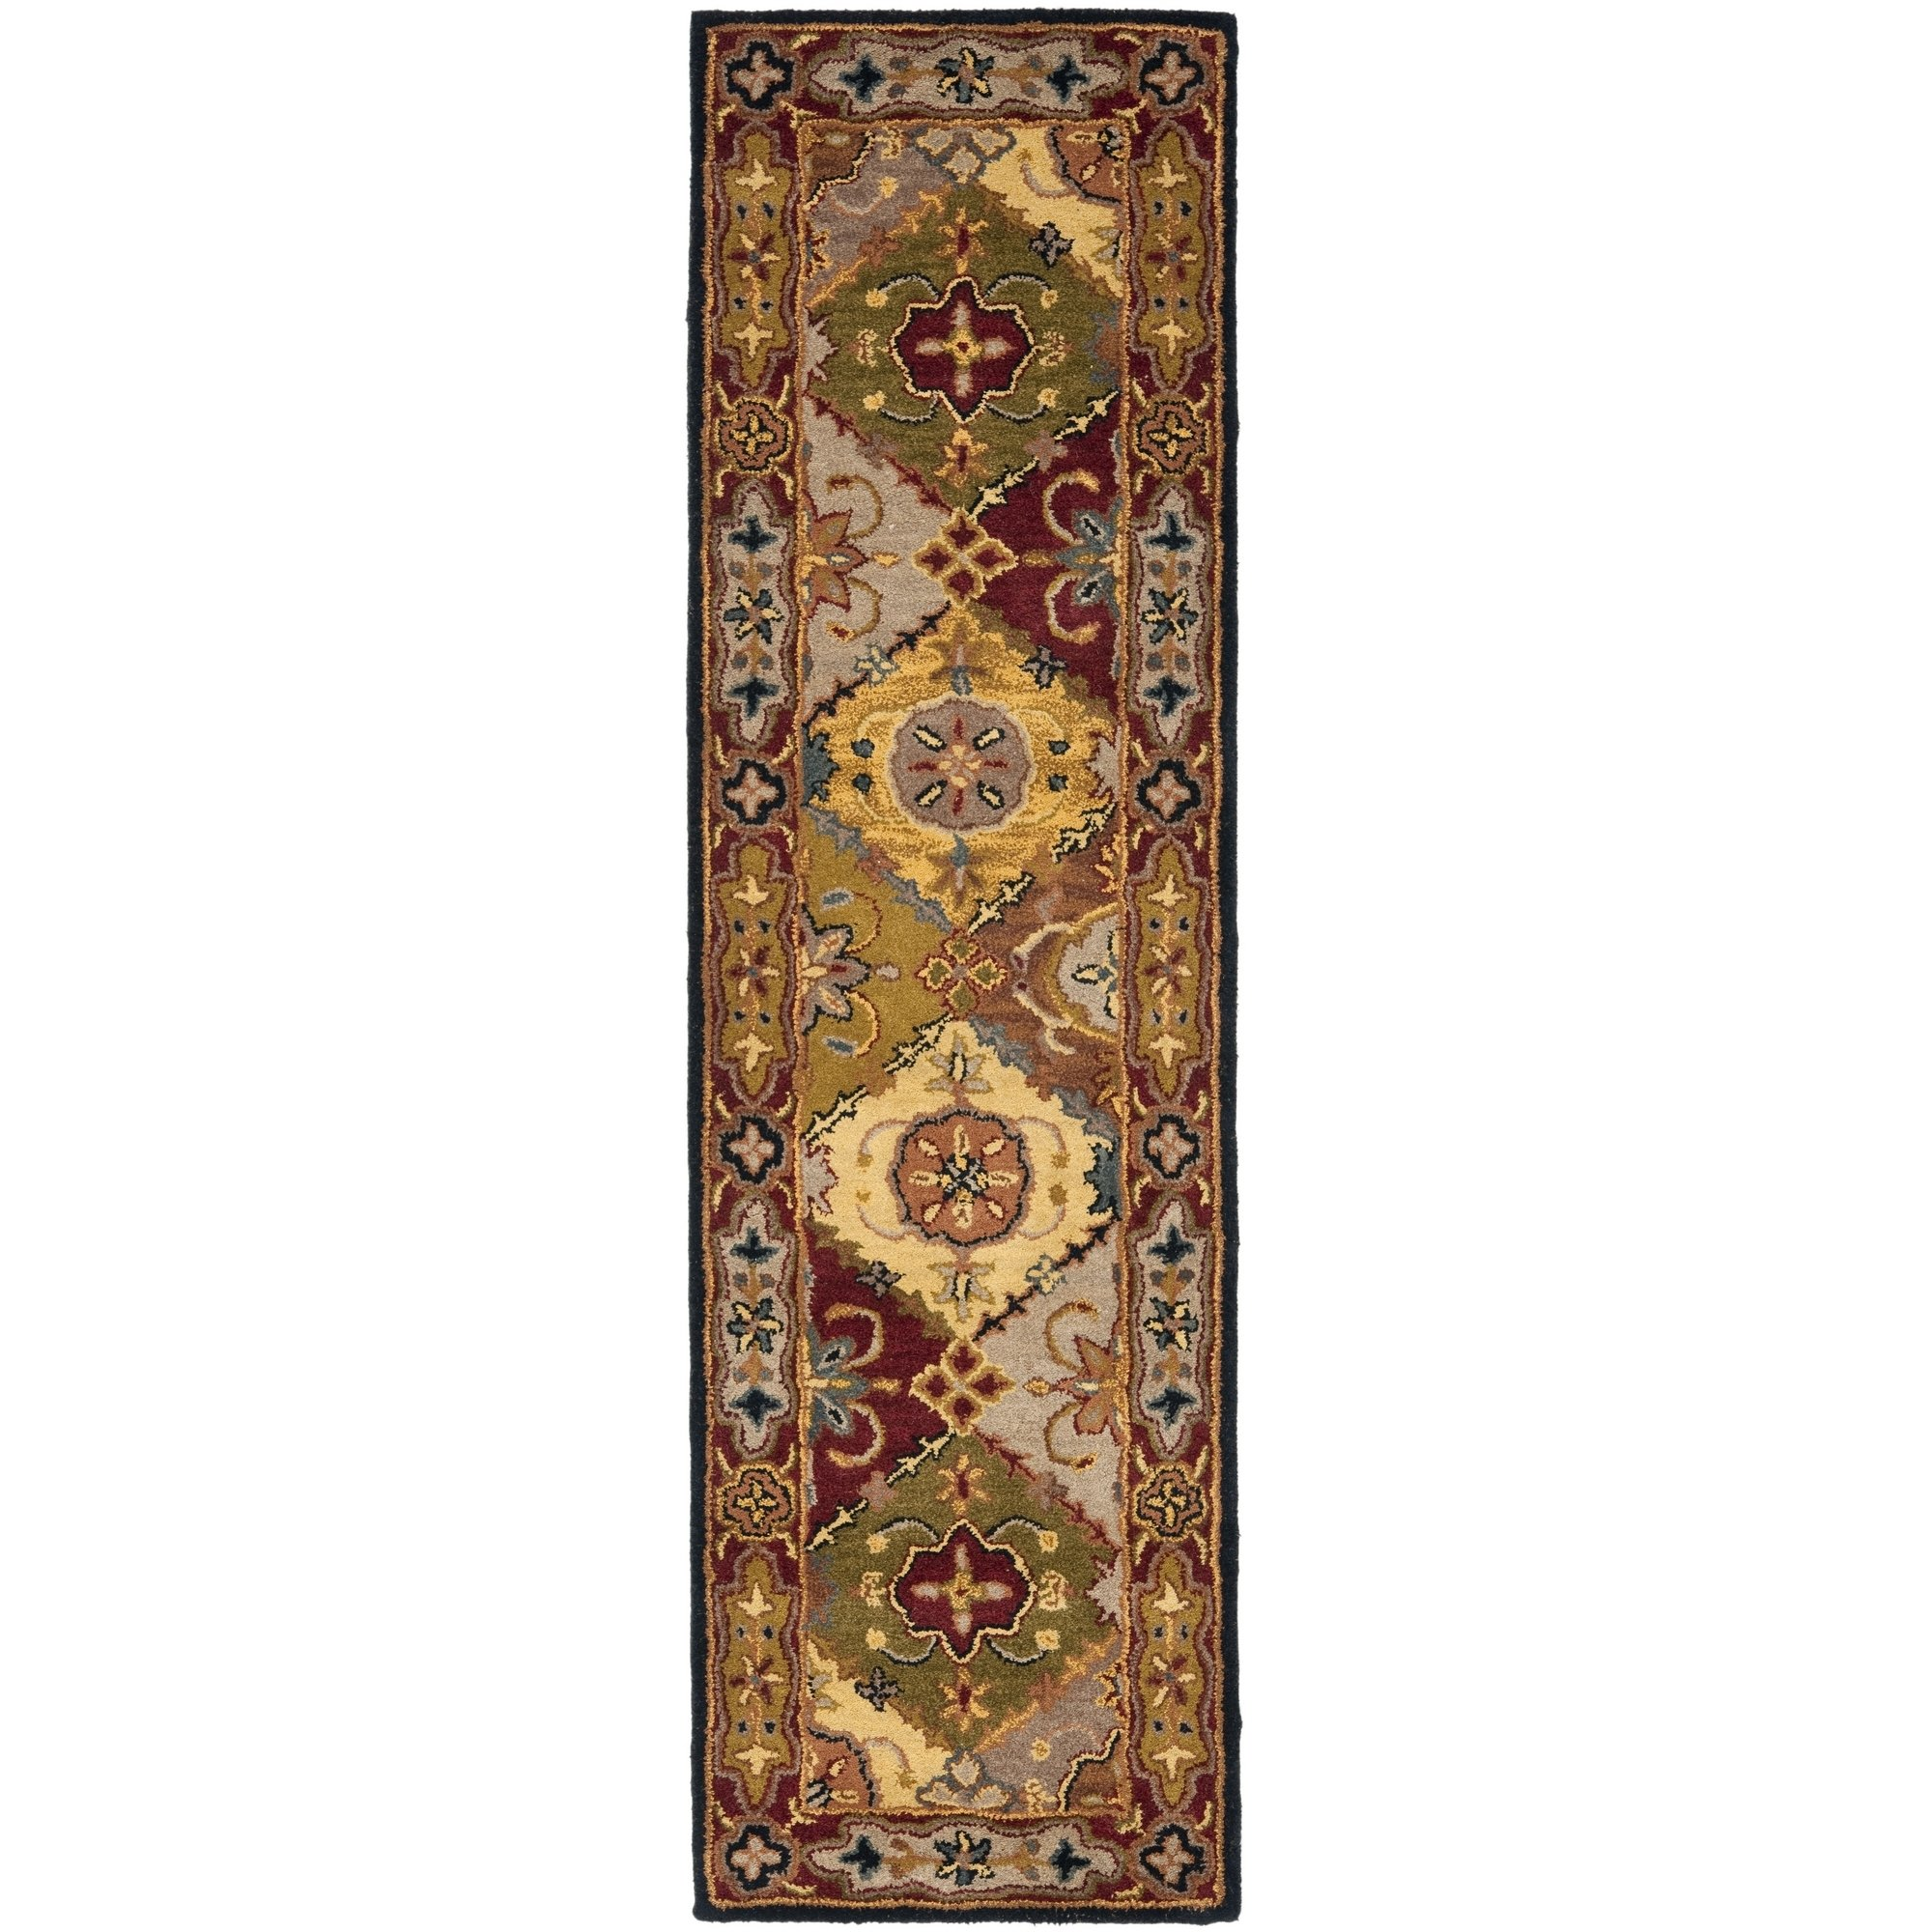 Safavieh Heritage Collection HG512B Handcrafted Traditional Oriental Multi and Red Wool Runner (2'3'' x 16')